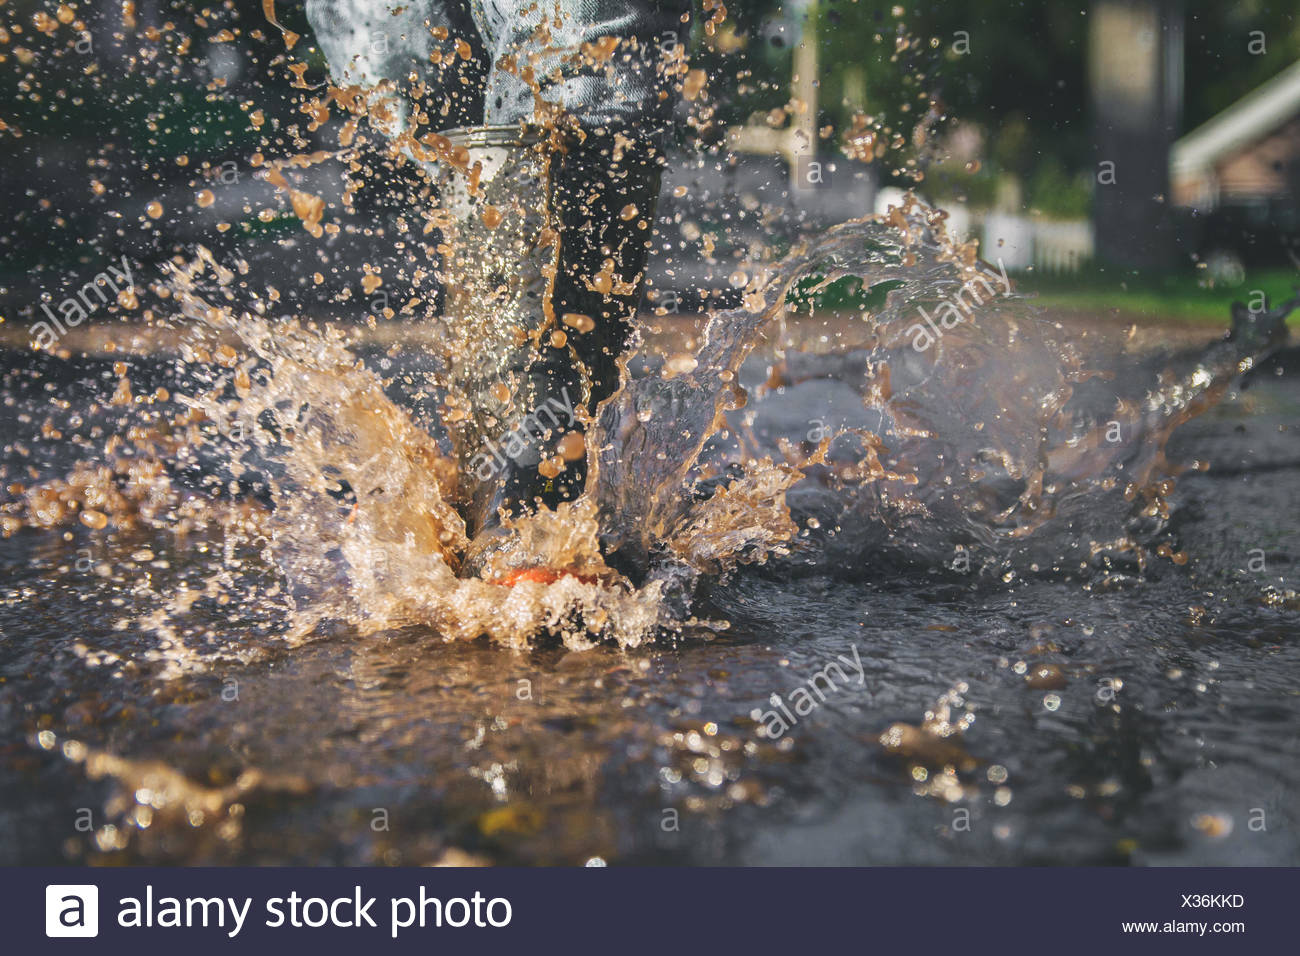 Close-up of child's legs splashing in a puddle of water - Stock Image